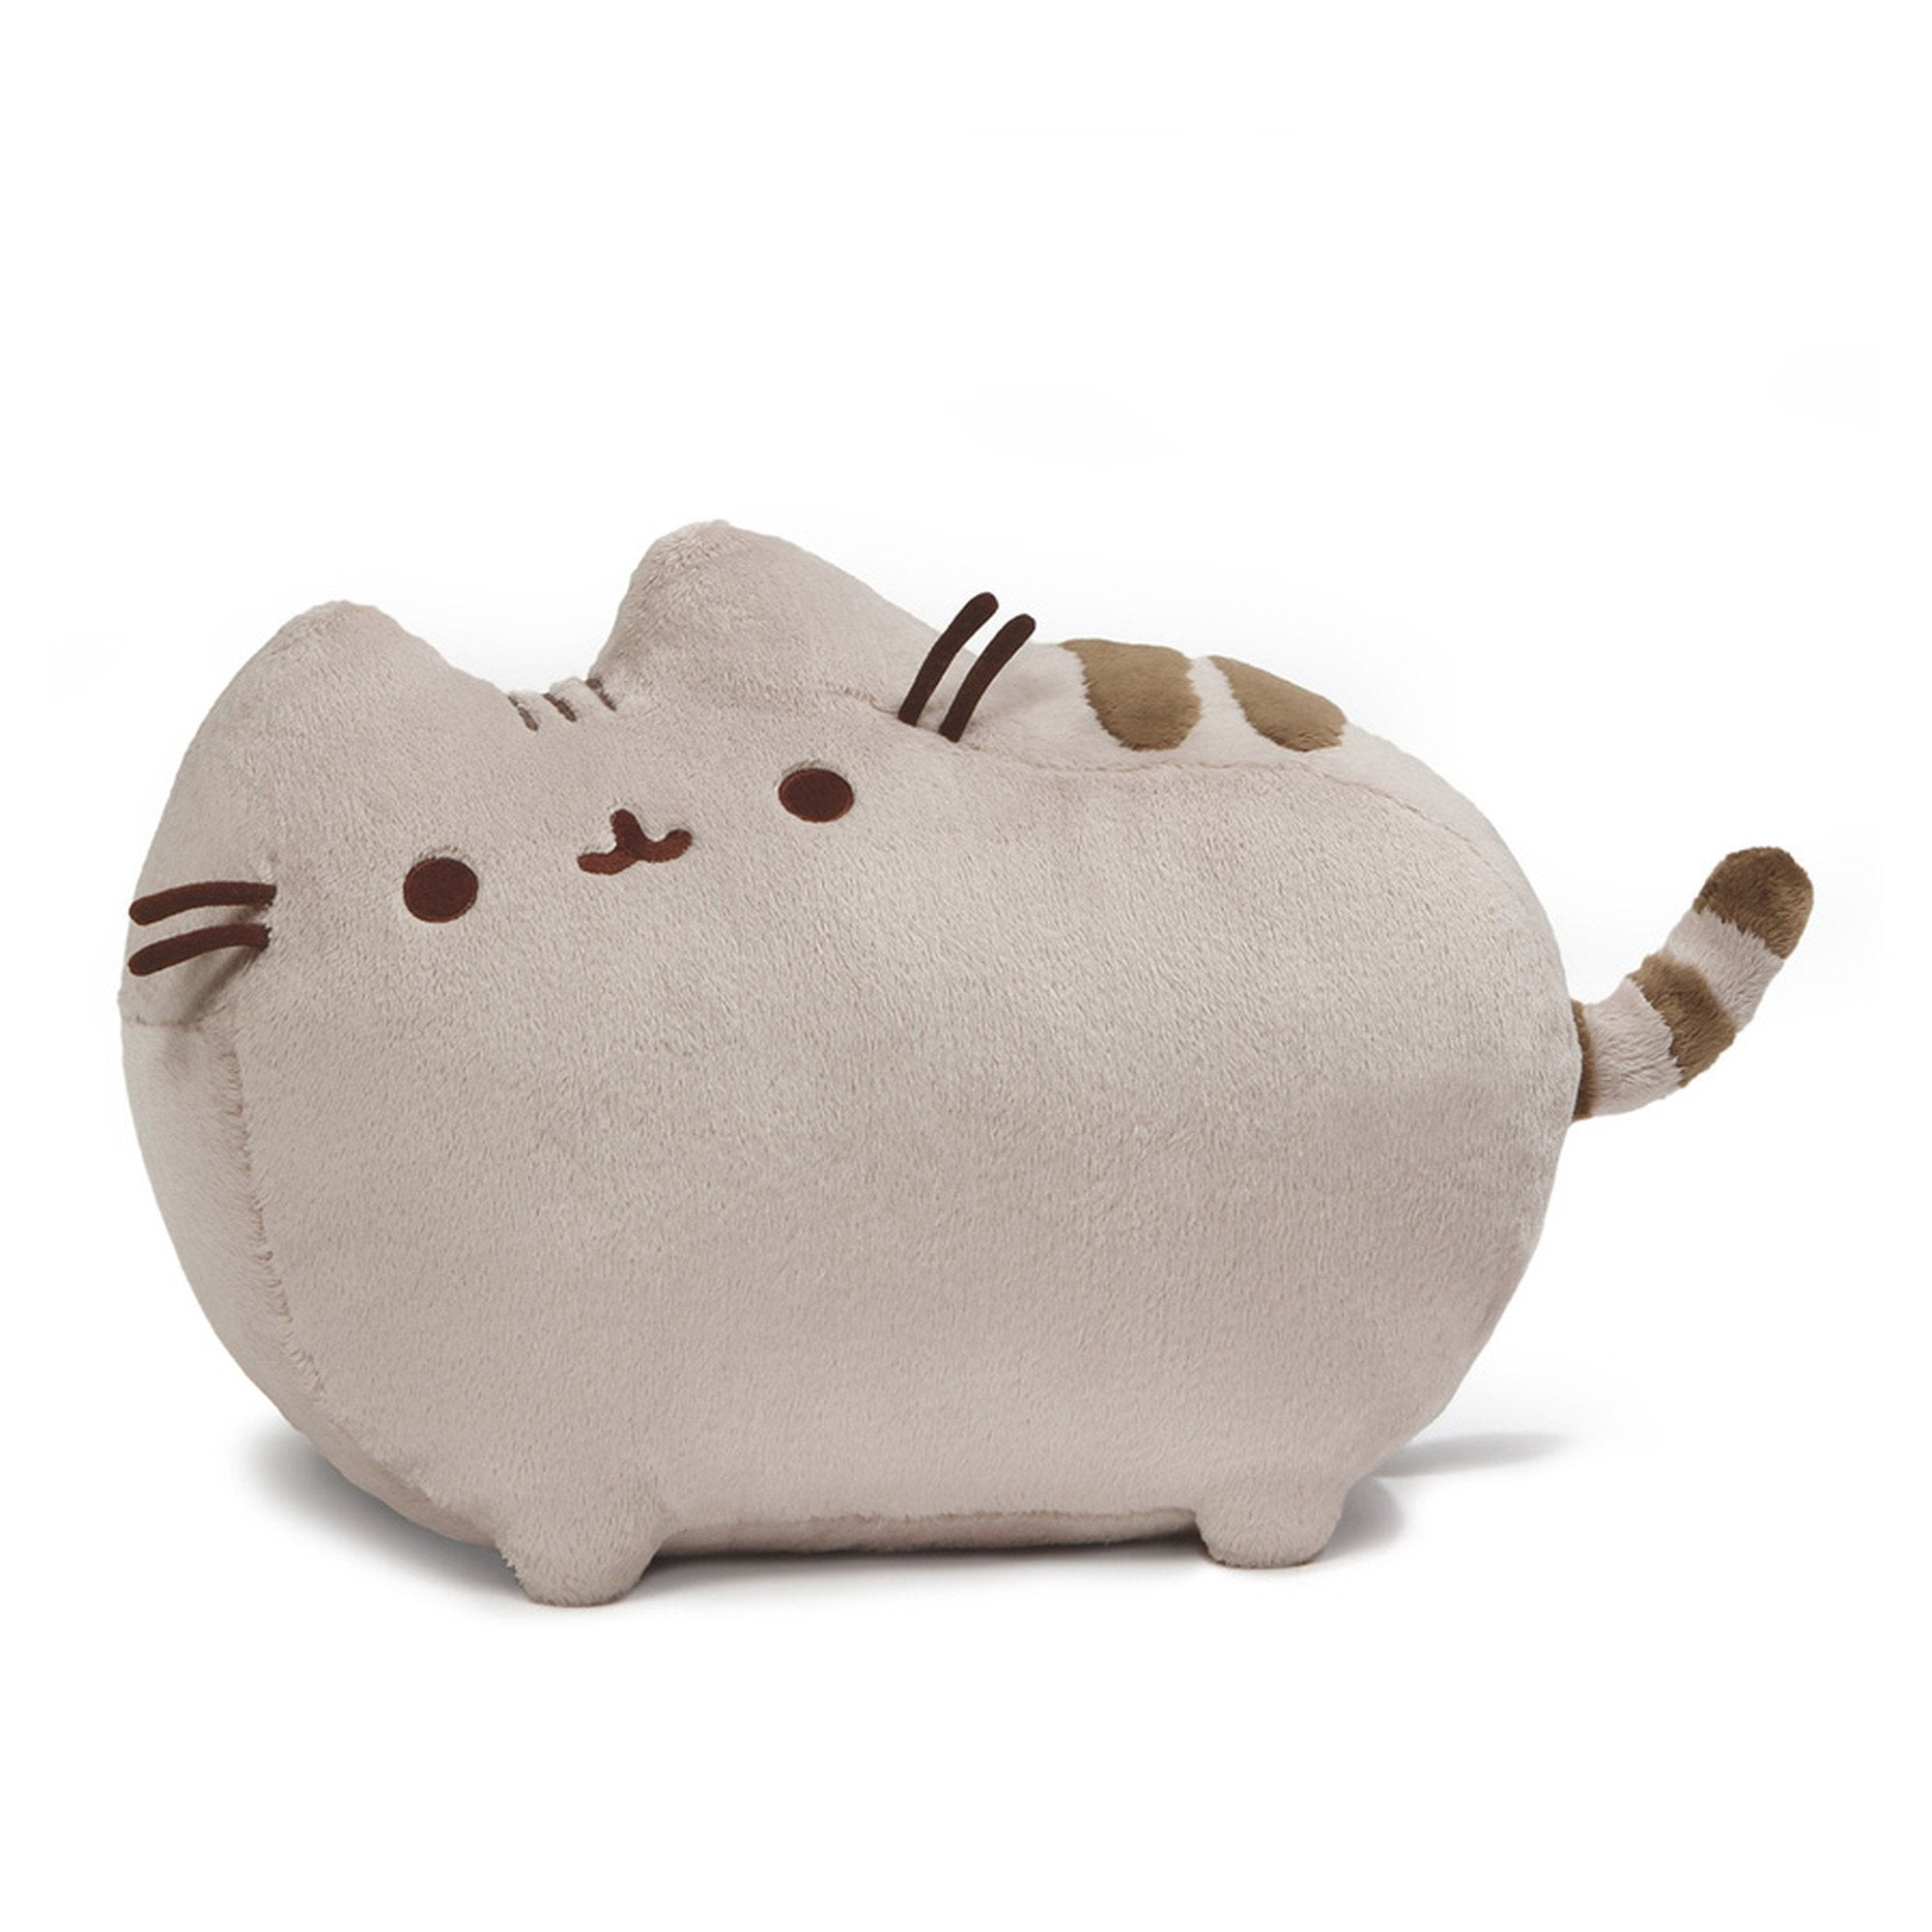 "Pusheen the Cat Deluxe 19"" Plush GUND"